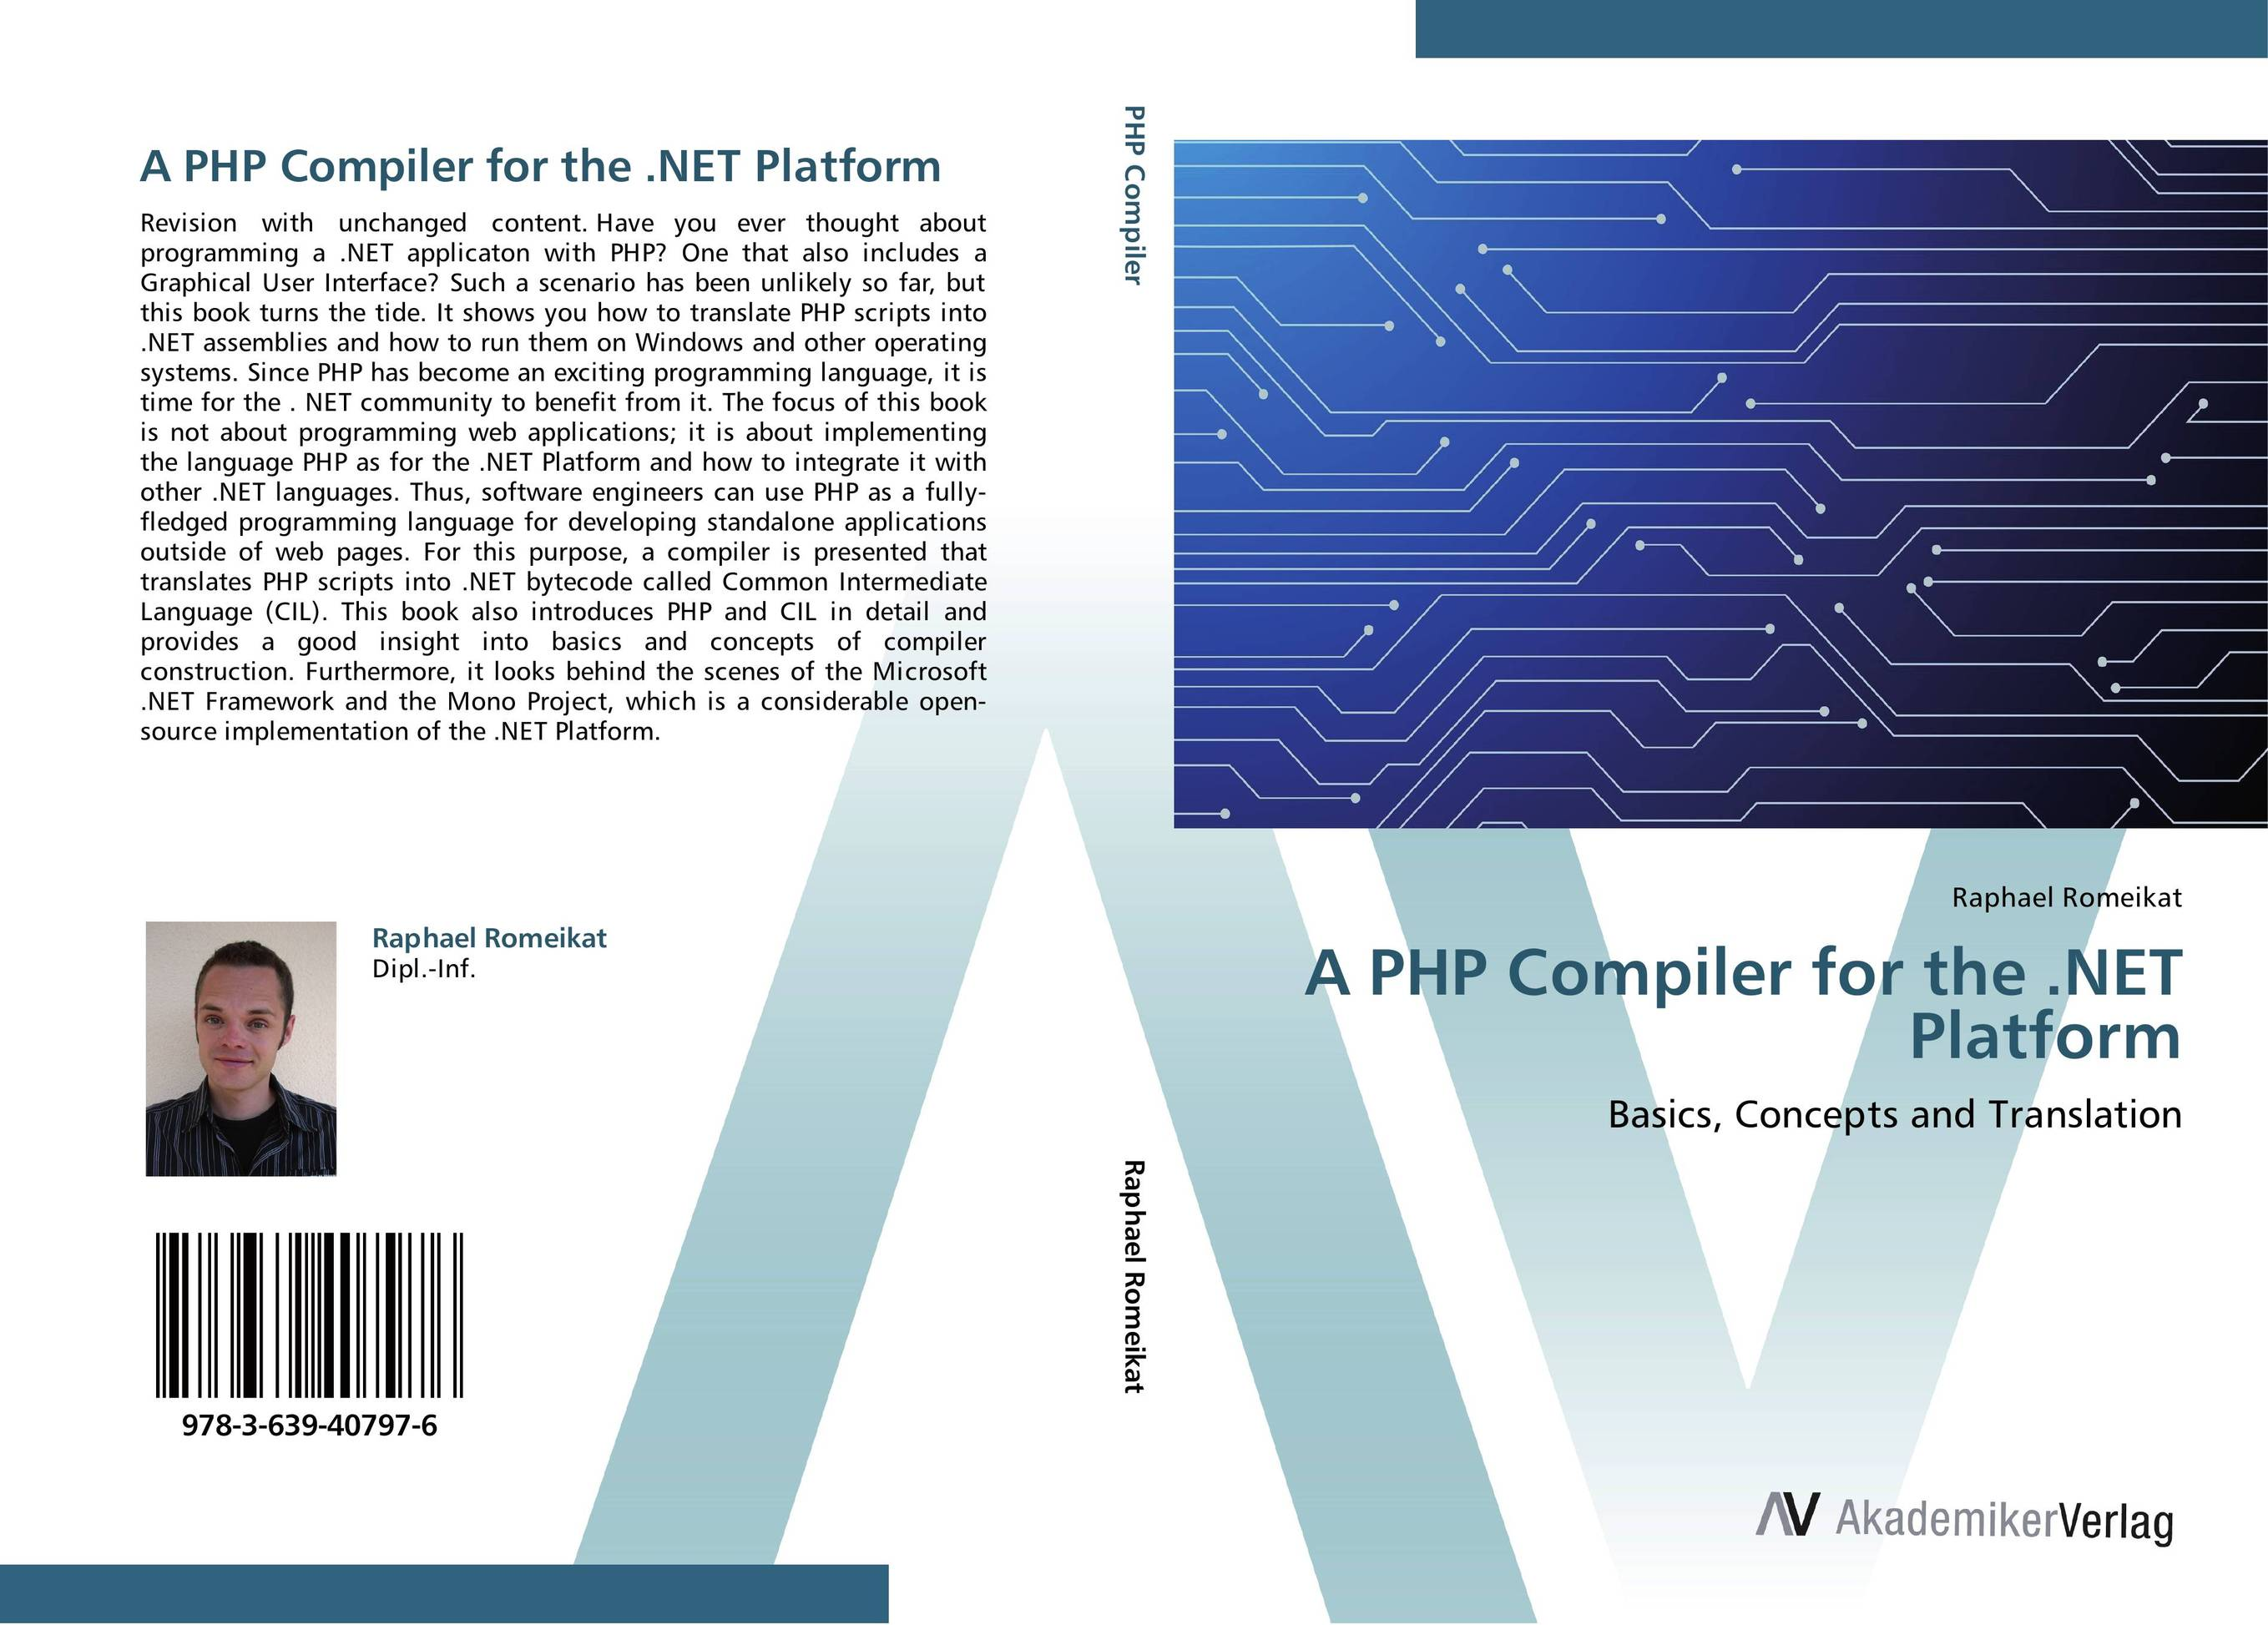 A PHP Compiler for the .NET Platform